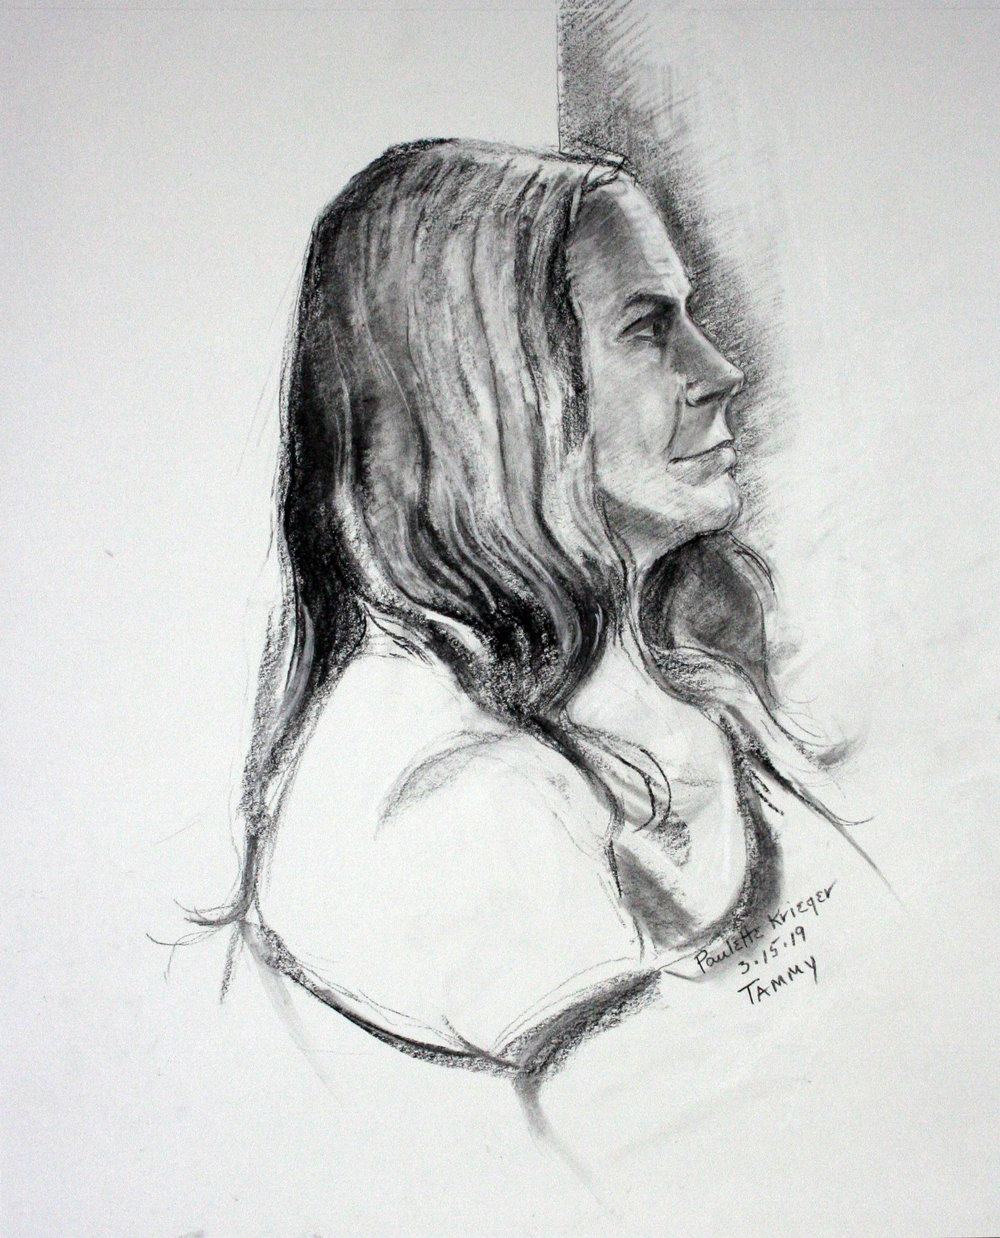 Paulette Krieger did this drawing.